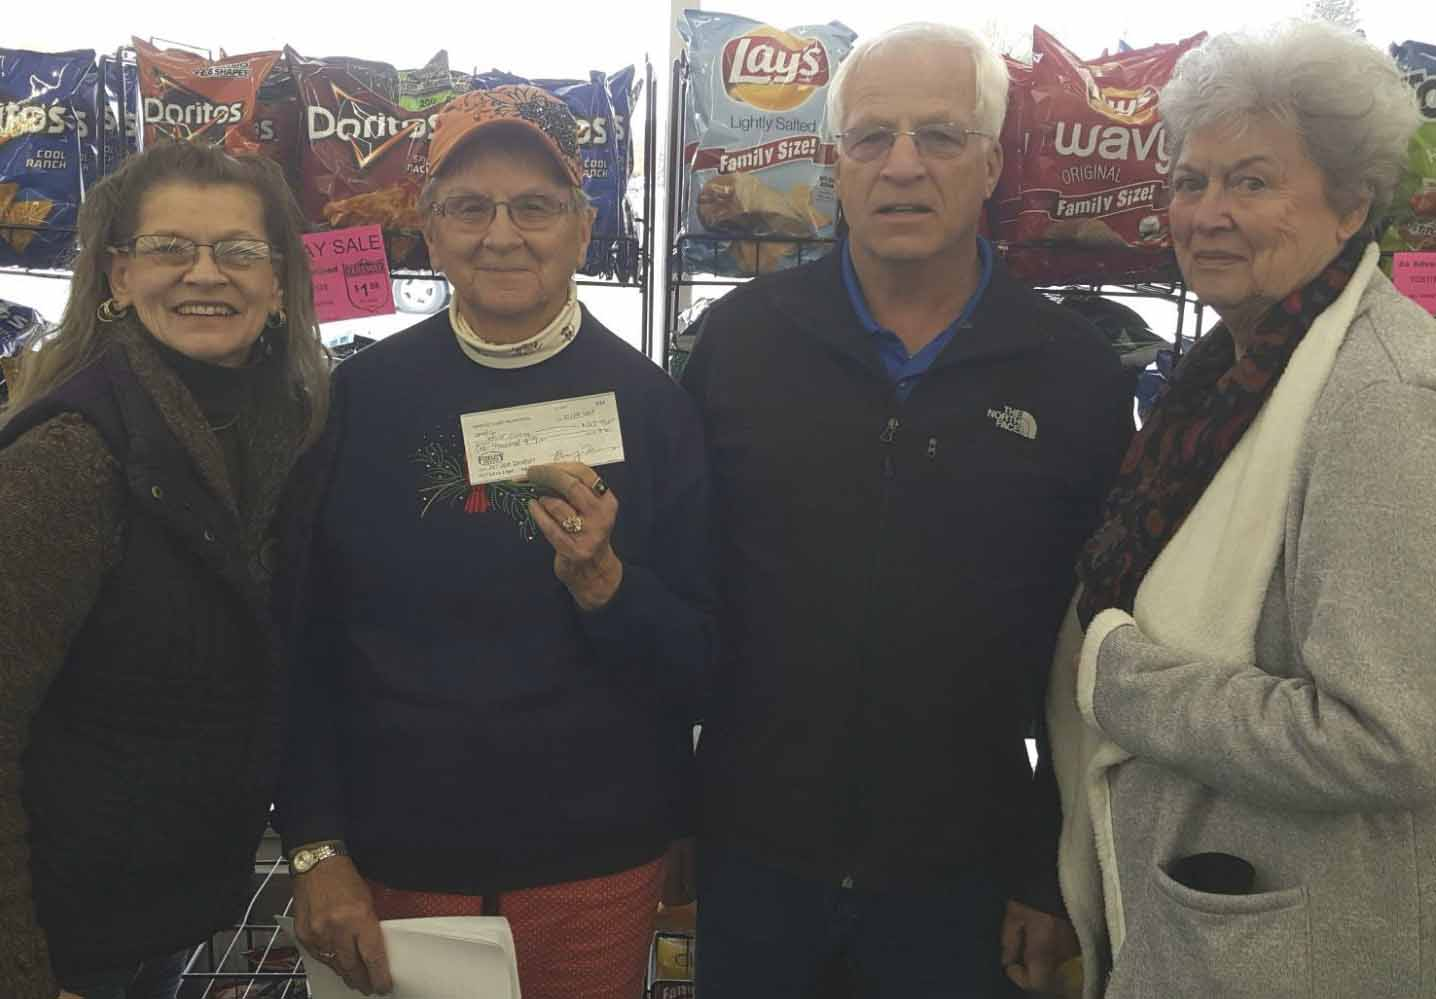 Jones County Senior Dining held its annual food drive and fundraiser at Fareway on Oct. 28. To assist in the efforts, the Jones County Dairy Producers donated $1,000. From left are Regina Engelbart, Monticello dining site manager; Janaan Kraus, senior dining volunteer; Kevin Miller, Dairy Producers; and Sue Brokaw, Senior Dining volunteer. (Photo submitted)